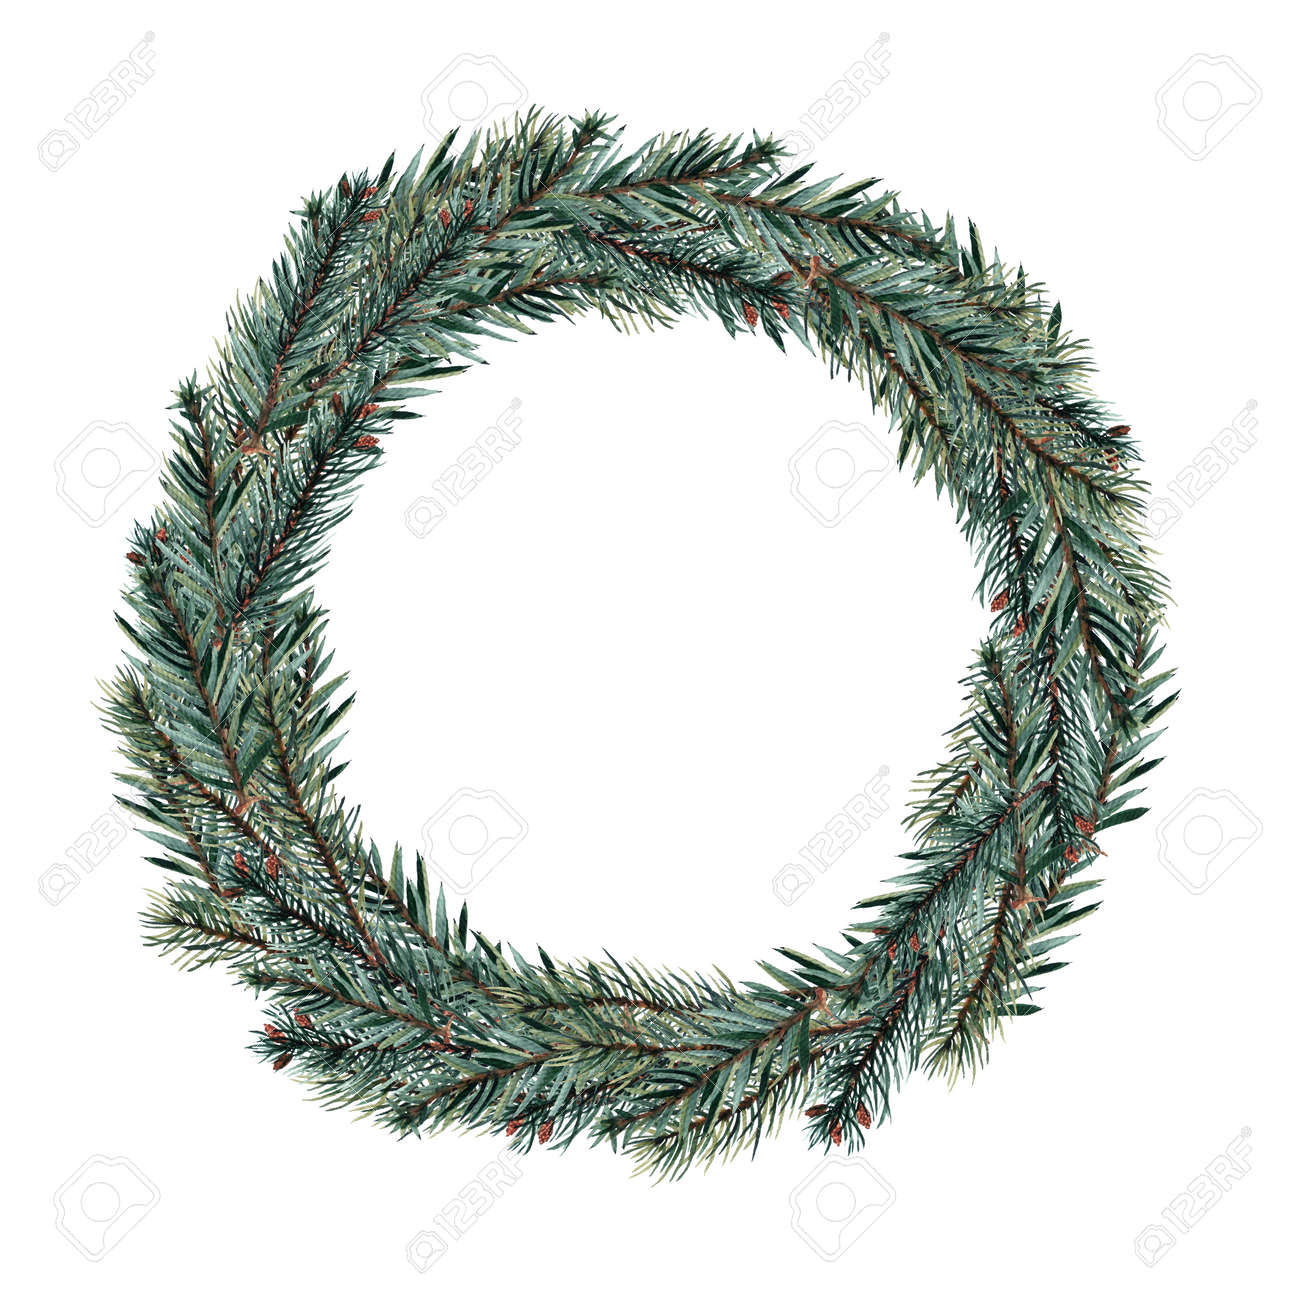 Watercolor Christmas Wreaths. Stock Photo, Picture And Royalty Free ...